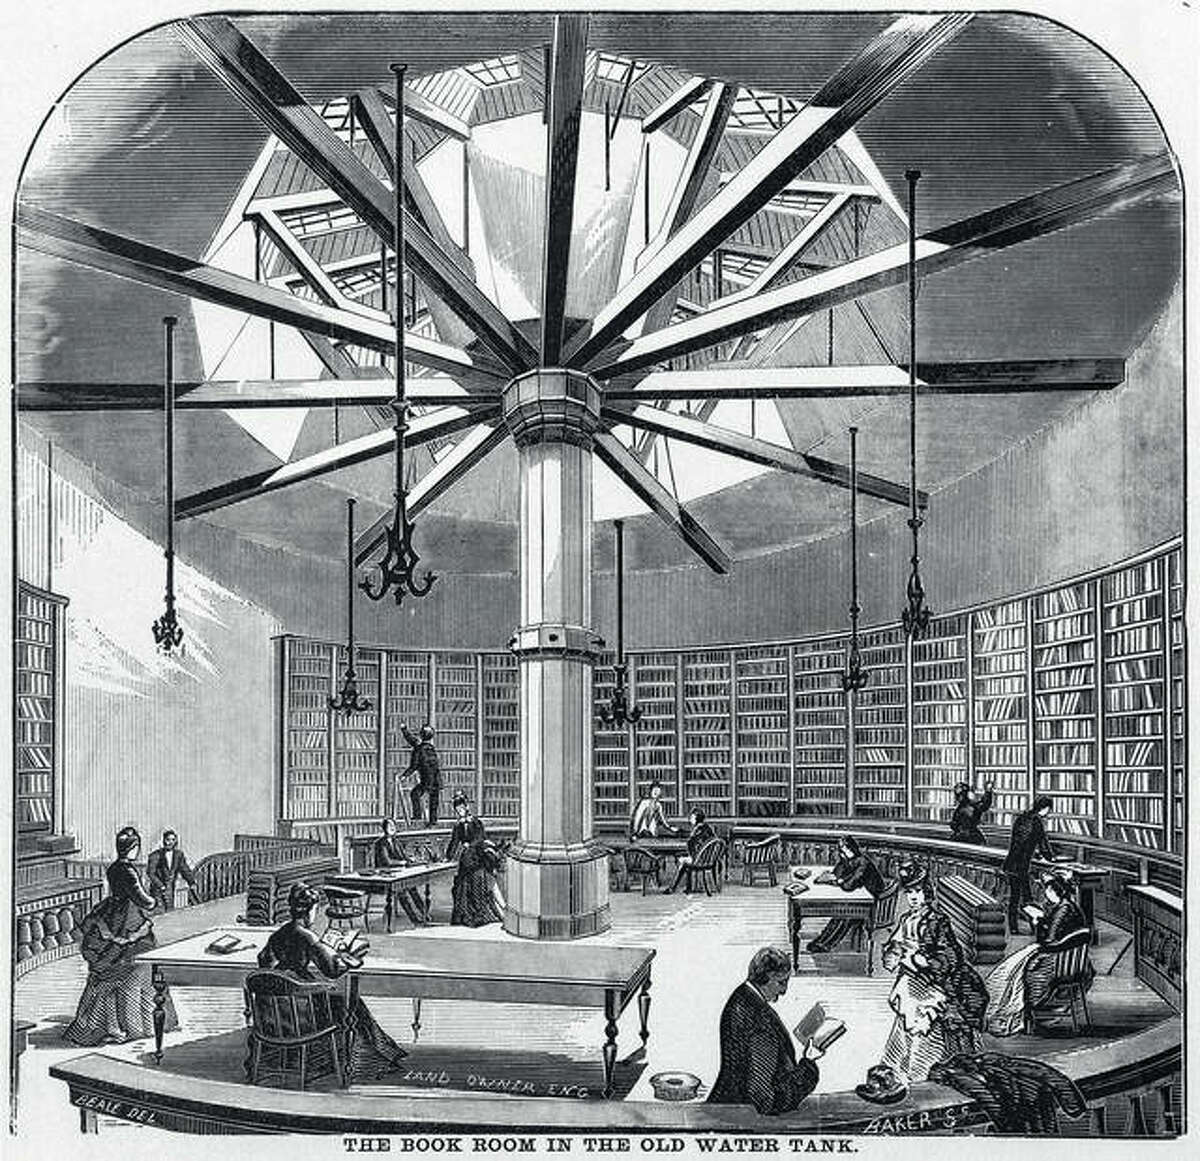 This reproduction of an engraving shows the interior of the book room in the old water tank that served as the temporary space of the Chicago Public Library after the Great Chicago Fire.